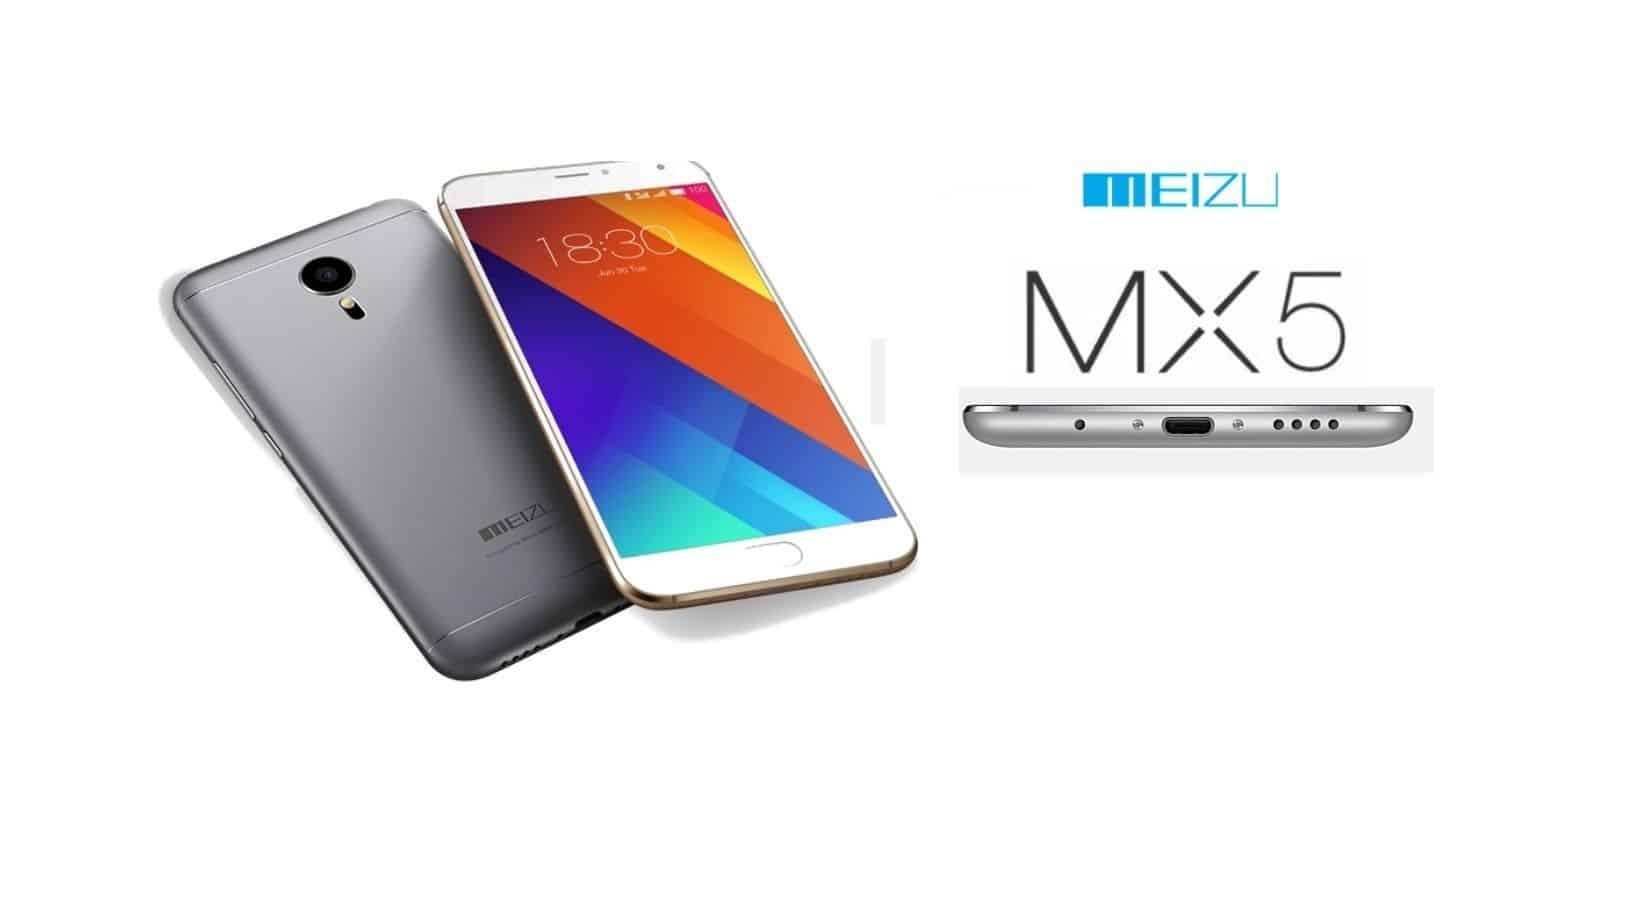 amazon Meizu MX5 reviews Meizu MX5 on amazon newest Meizu MX5 prices of Meizu MX5 Meizu MX5 deals best deals on Meizu MX5 buying a Meizu MX5 lastest Meizu MX5 what is a Meizu MX5 Meizu MX5 at amazon where to buy Meizu MX5 where can i you get a Meizu MX5 online purchase Meizu MX5 Meizu MX5 sale off Meizu MX5 discount cheapest Meizu MX5 Meizu MX5 for sale